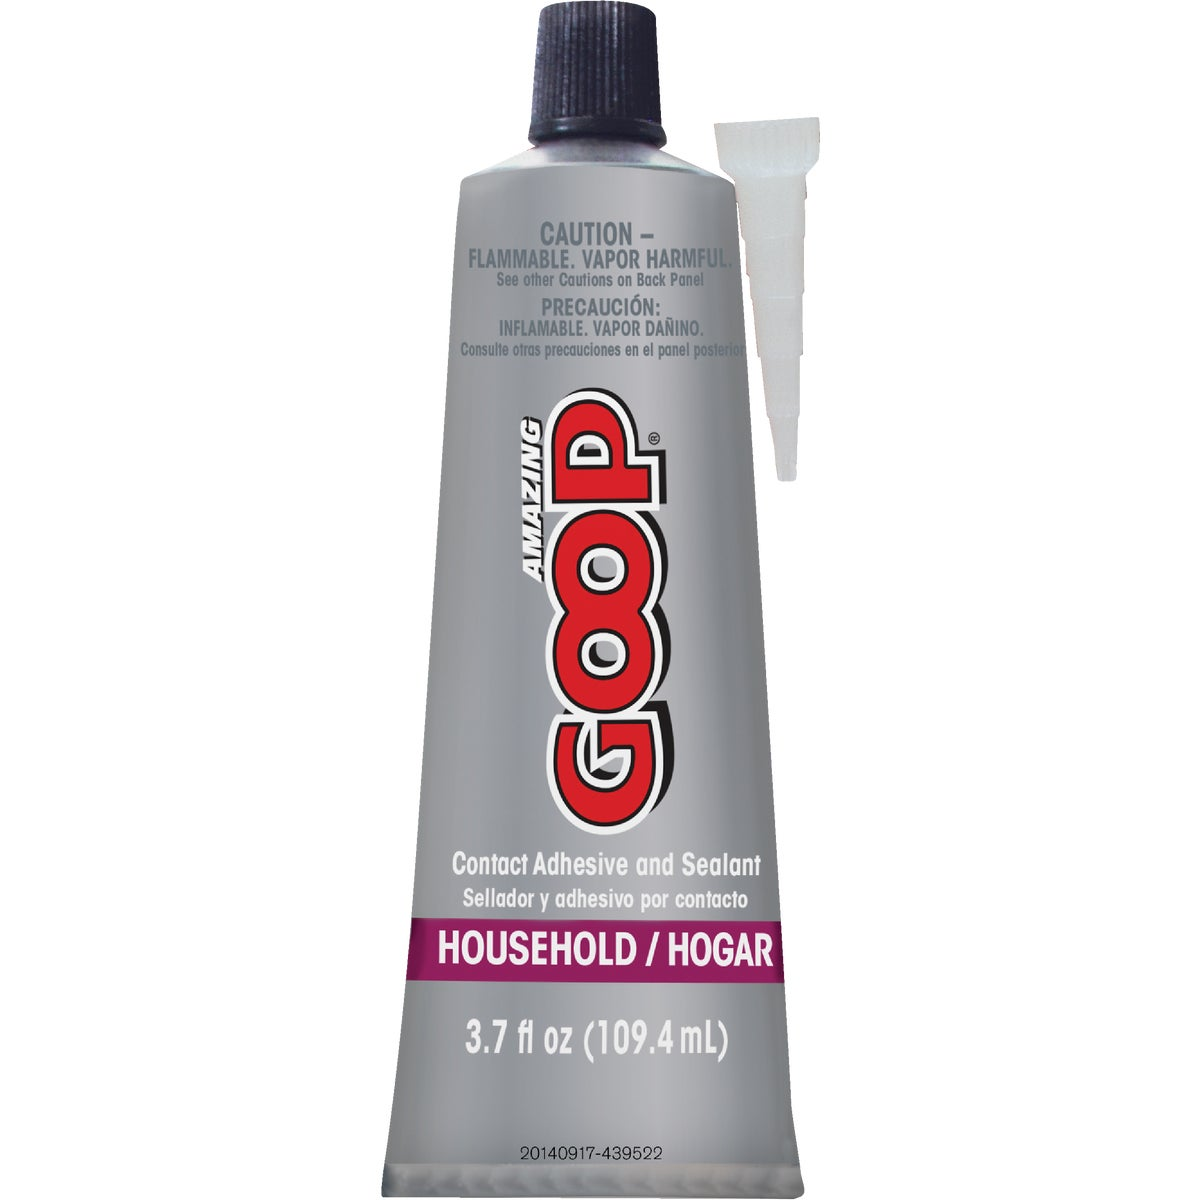 3.7OZ HOUSE GOOP GLUE - 130011 by Eclectic Prod Inc